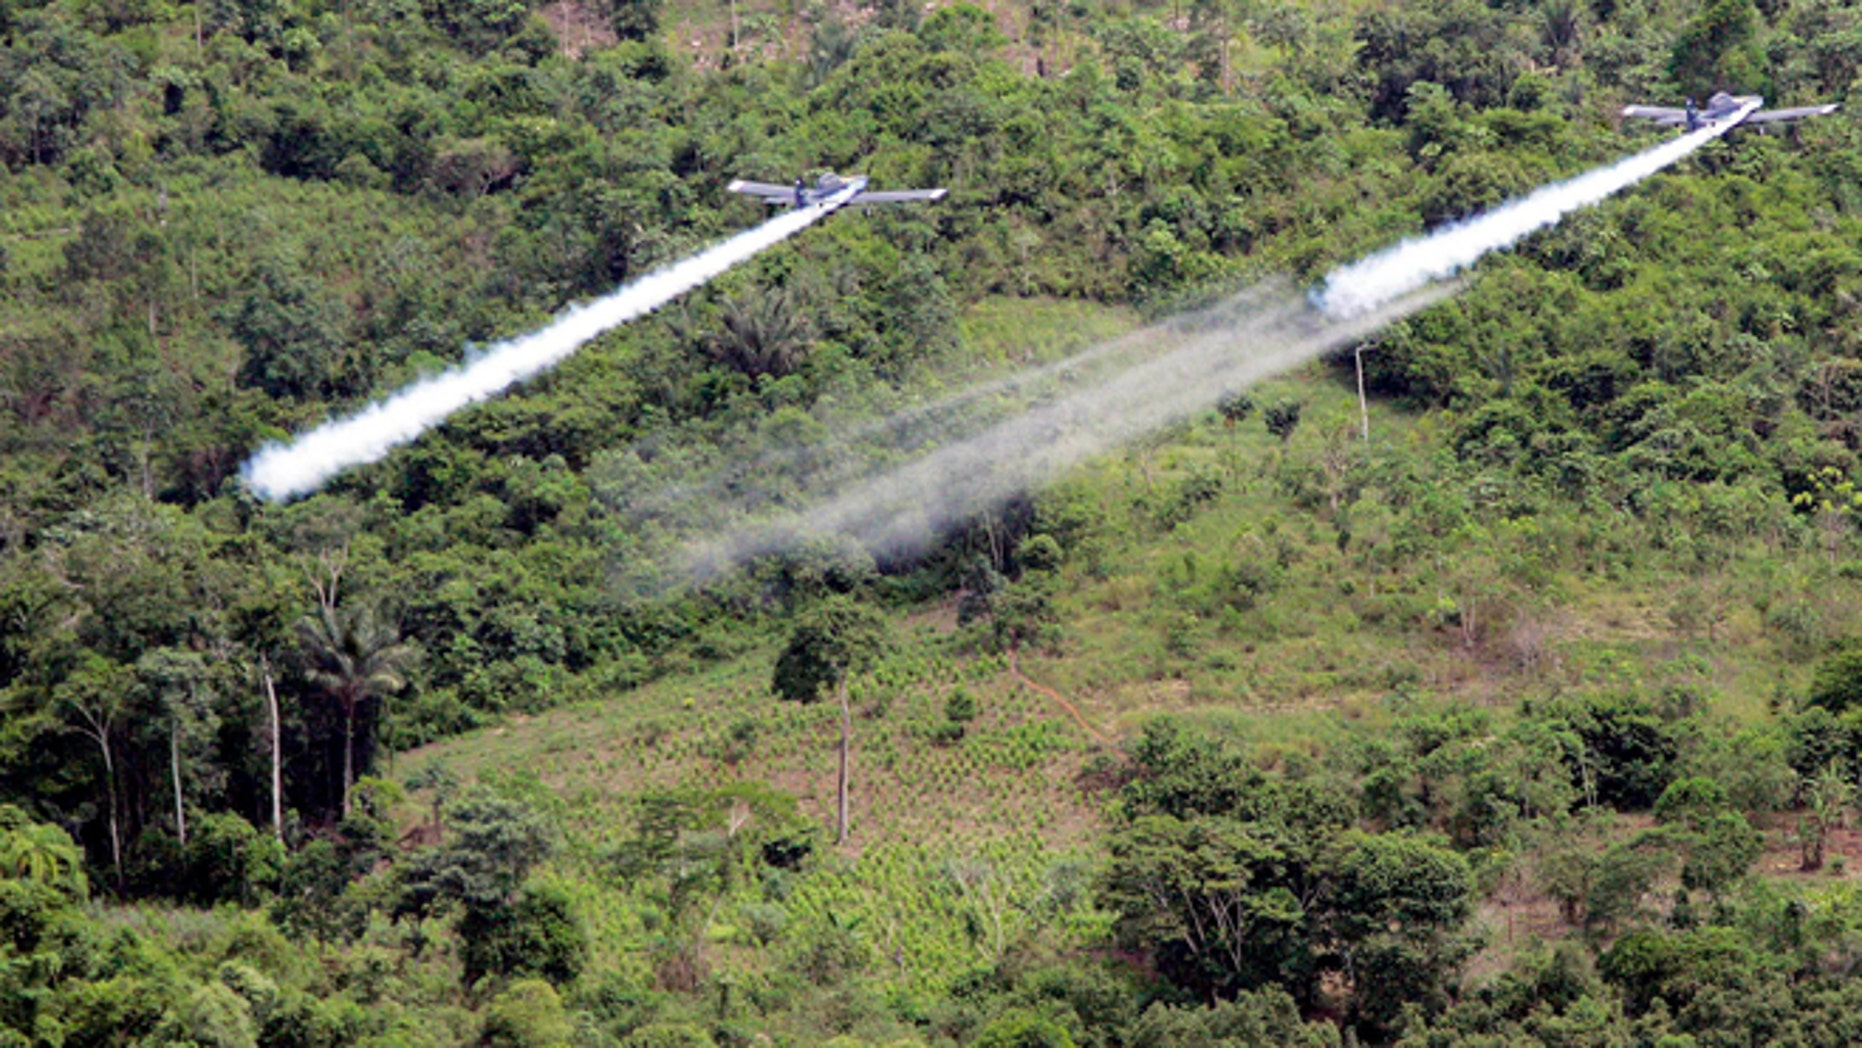 FILE - In this Dec. 11, 2006, file photo, two AT- 802 planes are seen fumigating coca fields in San Miguel, Colombia. Cultivation of the leaf used to make cocaine skyrocketed in 2014 in Colombia, according to a new White House report released partially on Monday, May 4, 2015, thatâs likely to pressure the government to preserve a threatened U.S. aerial eradication program thatâs been at the heart of the drug war for over a decade. (AP Photo/Fernando Vergara, File)